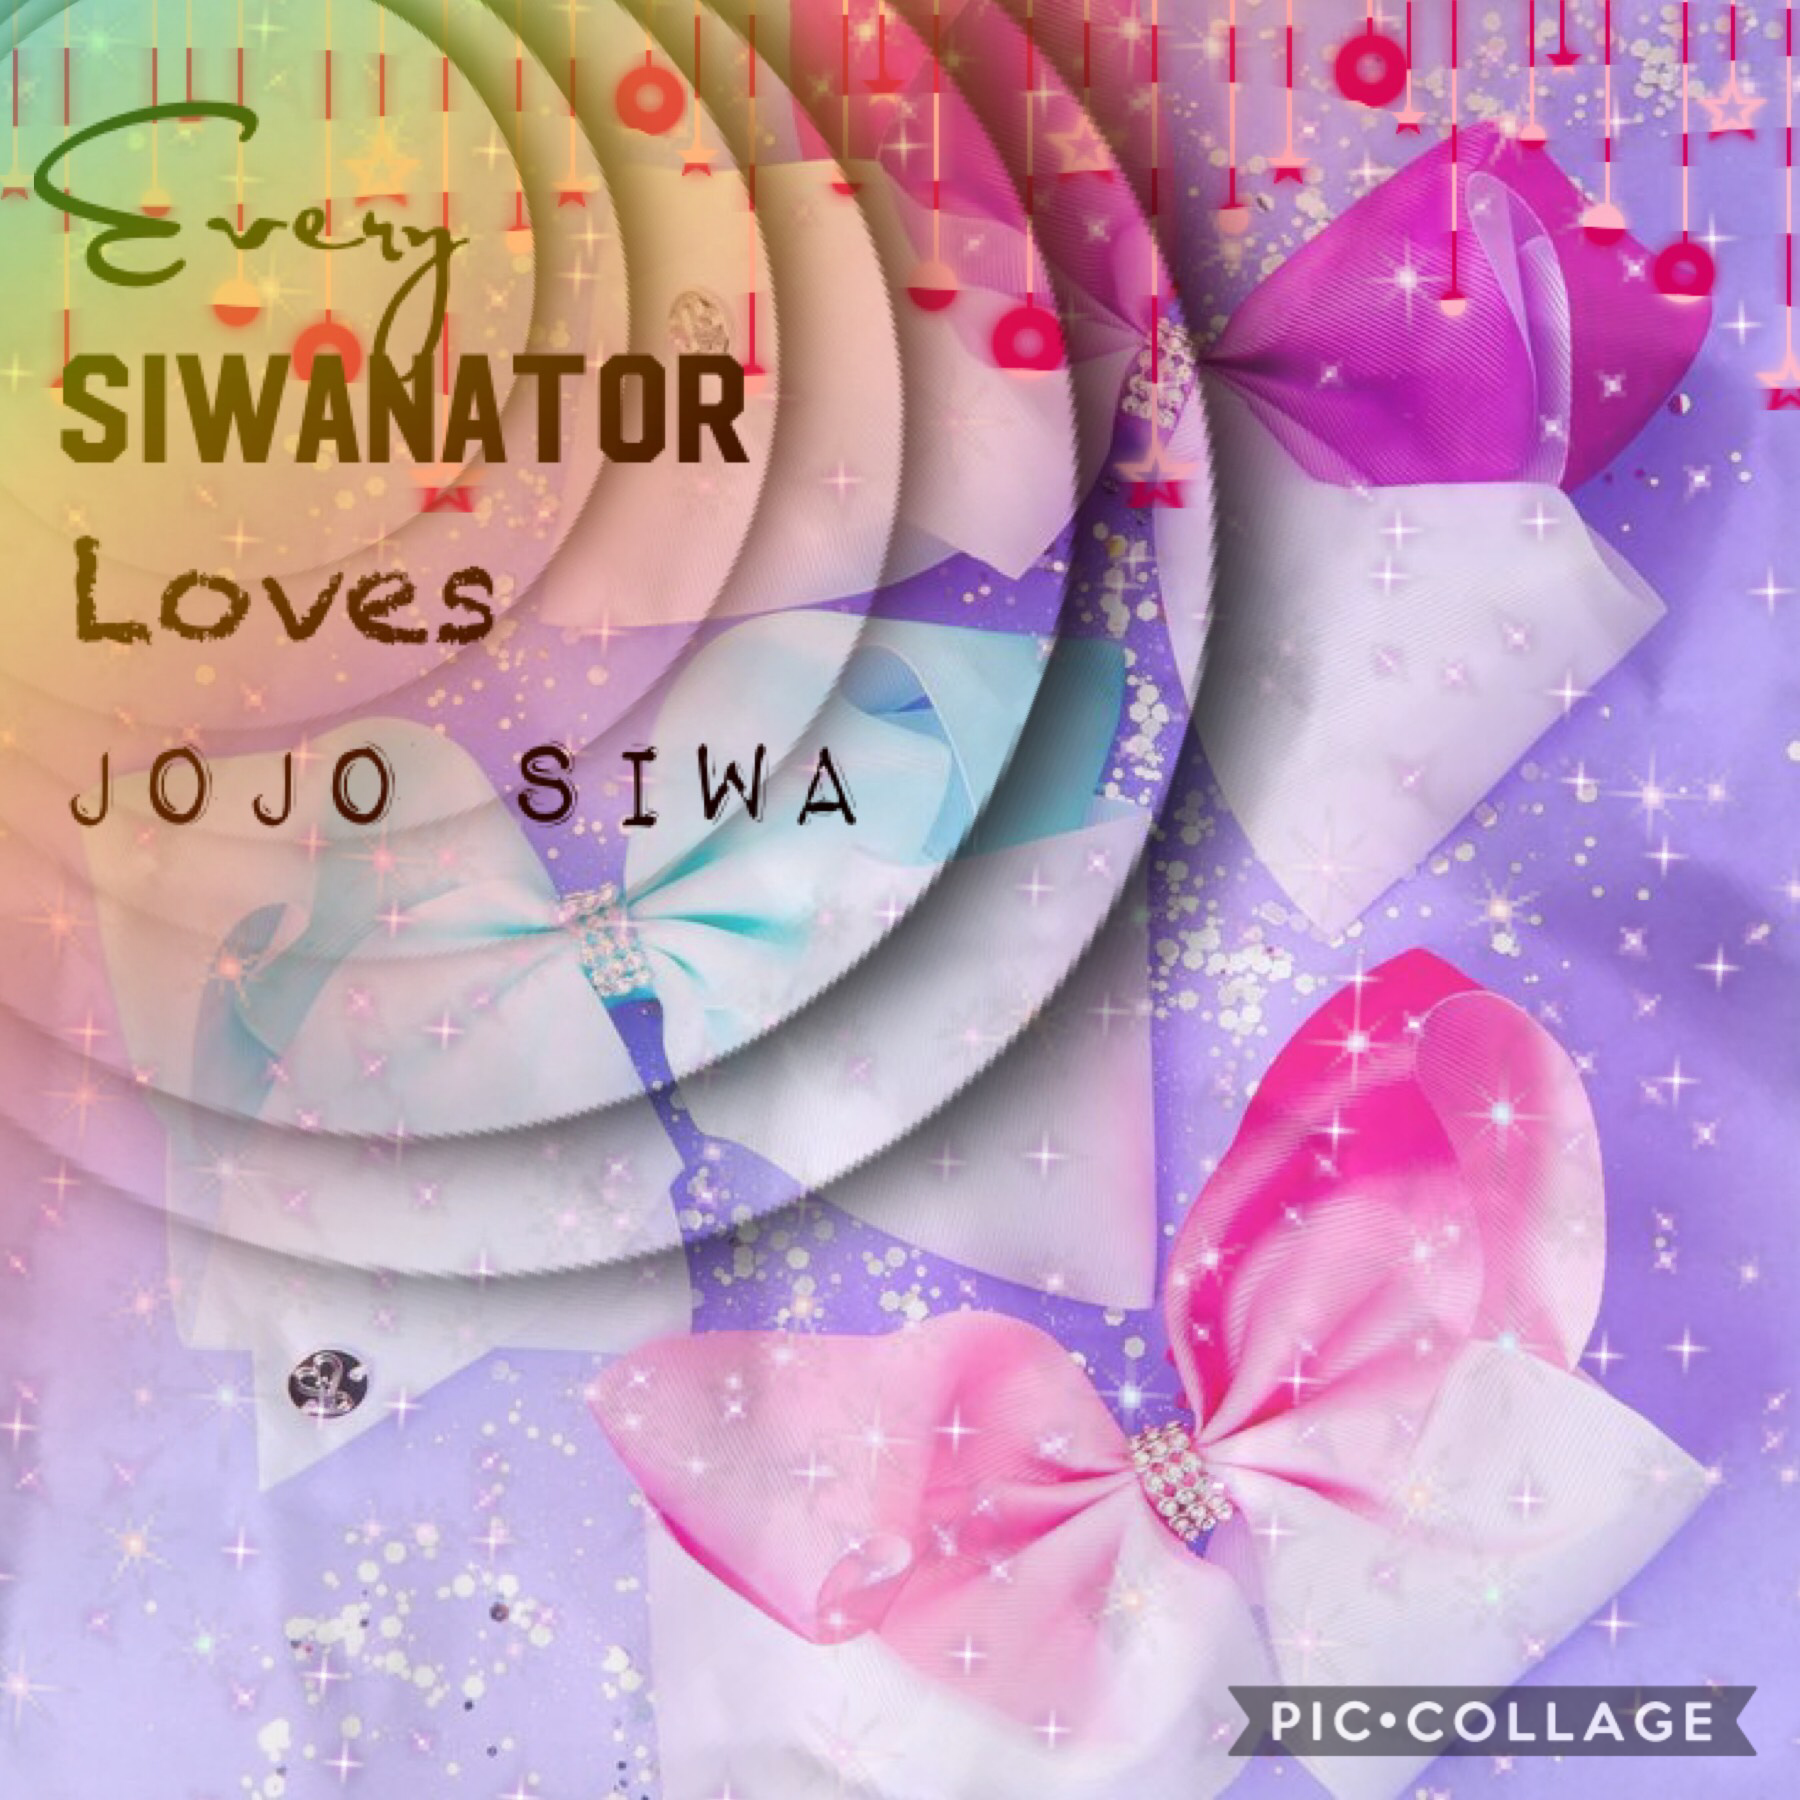 Tap💜  I really hope this one gets featured  QOTD: Do you have any JoJo Siwa Bows if so how many do you have AOTD: I have 8 JoJo Siwa Bows